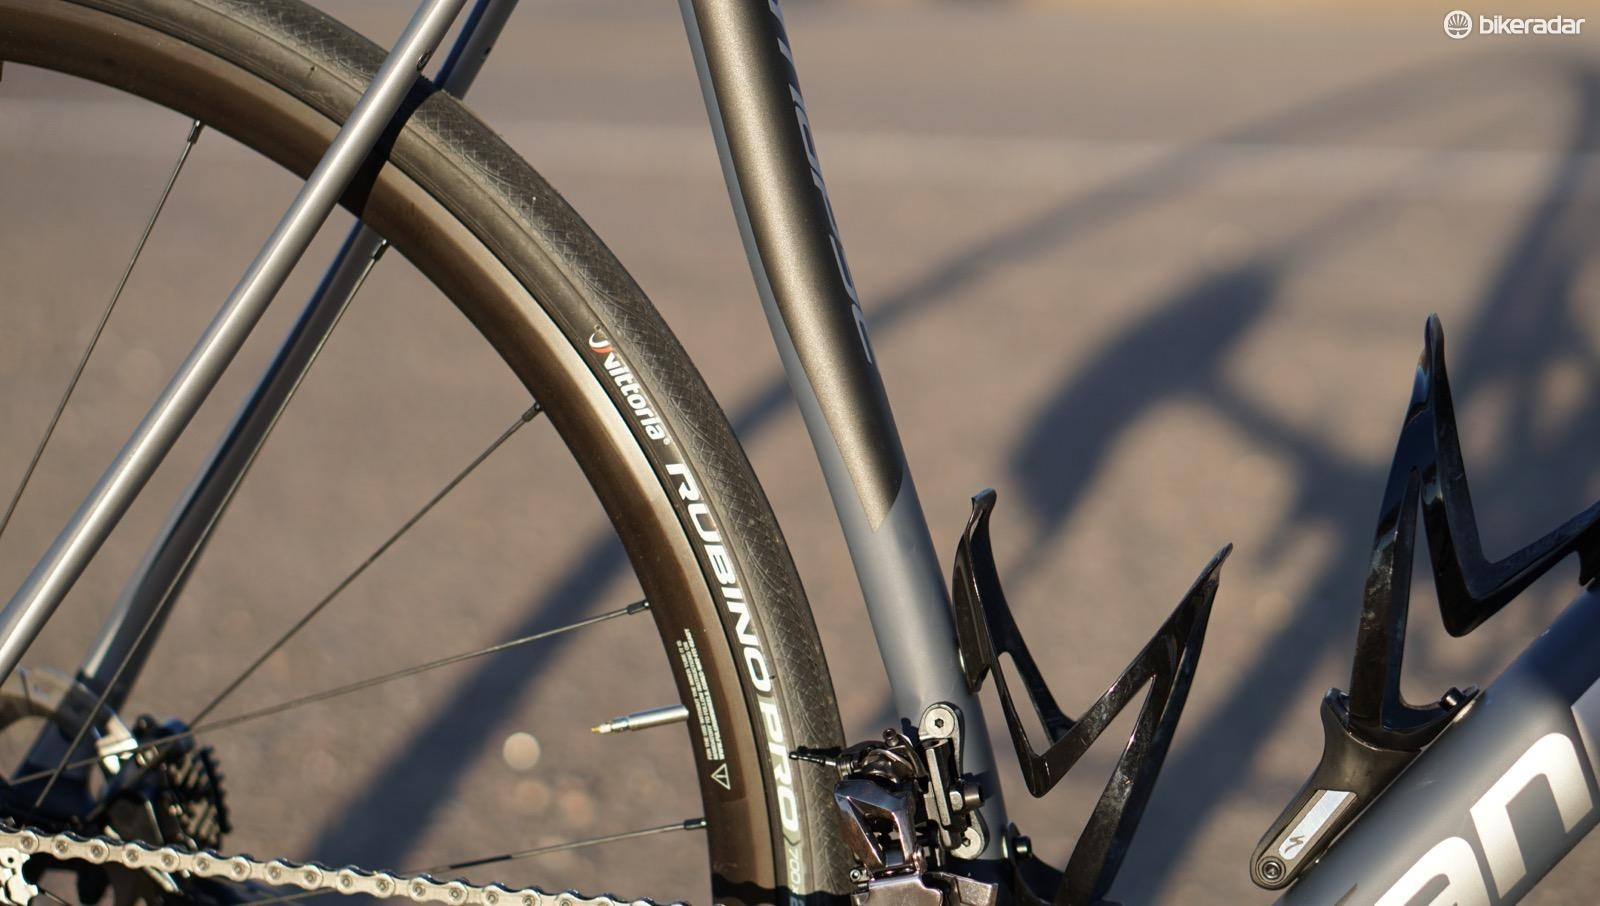 The bike comes with 28mm Rubinos, but there is plenty of room for up to 32s